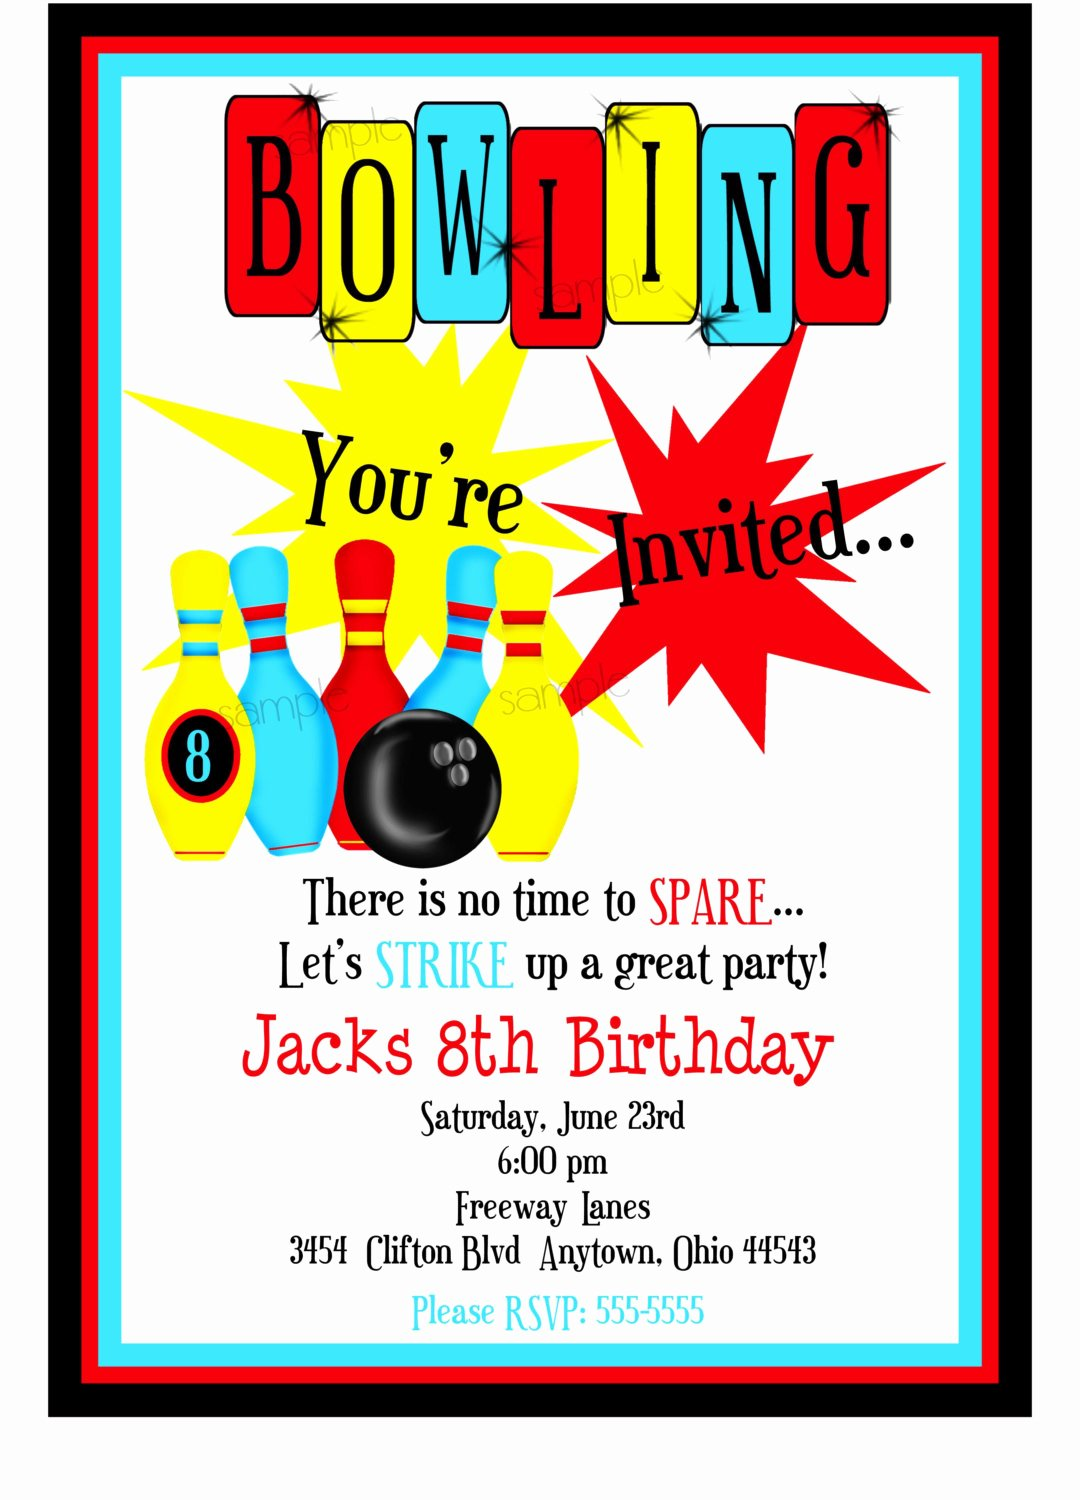 Bowling Party Invites Templates Unique Bowling Invitations Boys Bowling Birthday Party Cosmic